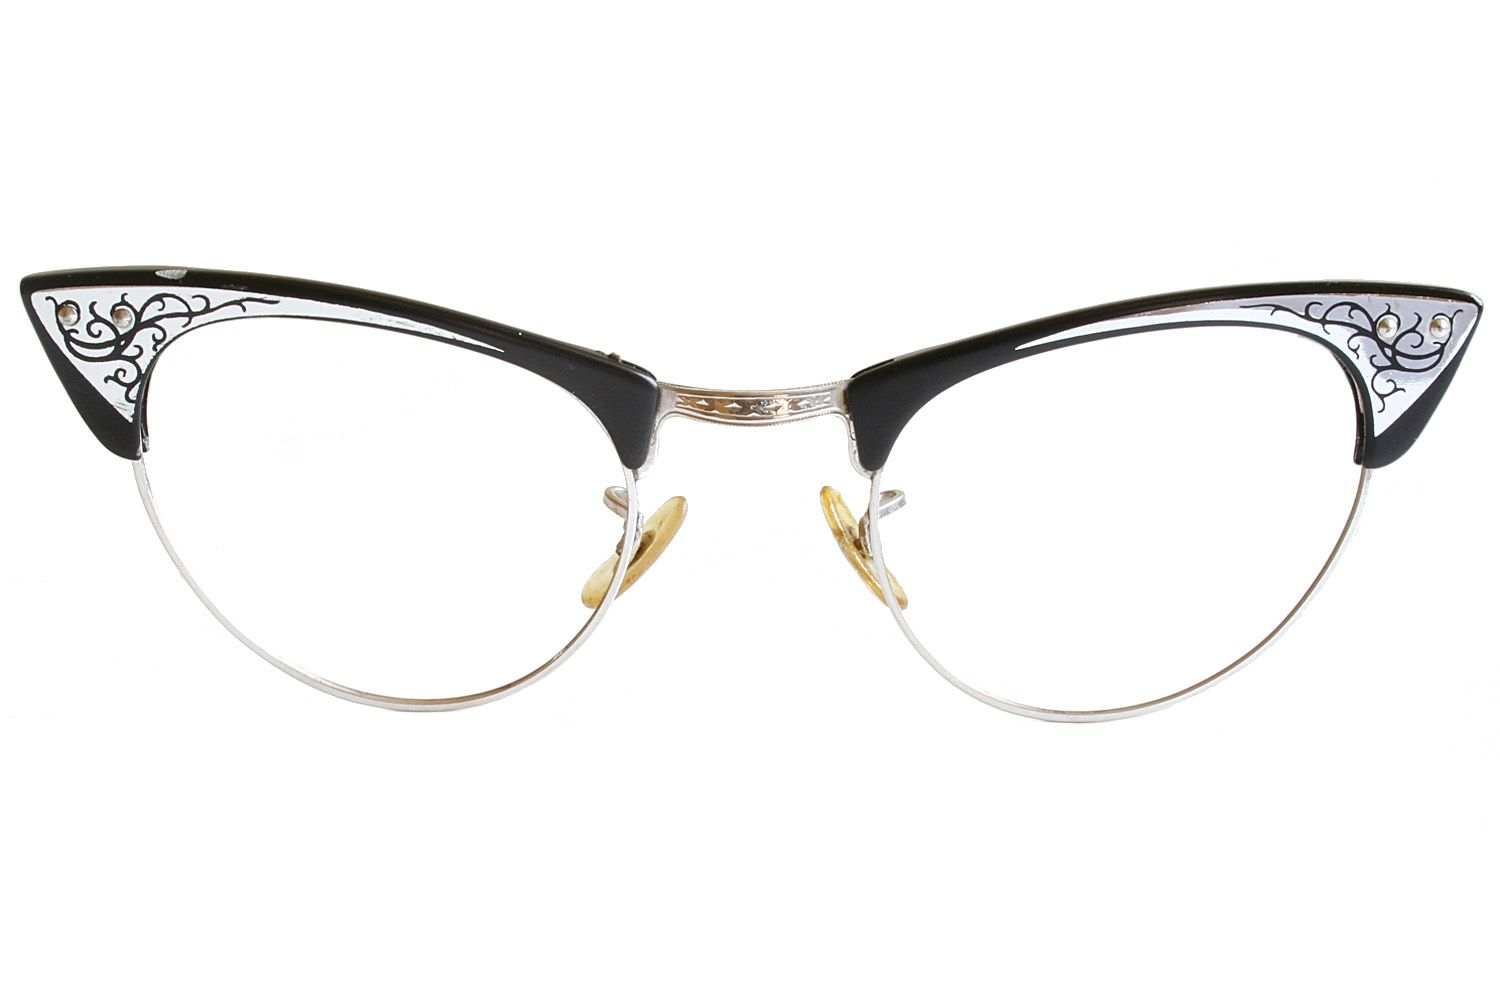 Old Fashioned Glasses Frame : Old Fashioned Glasses Frames www.galleryhip.com - The ...